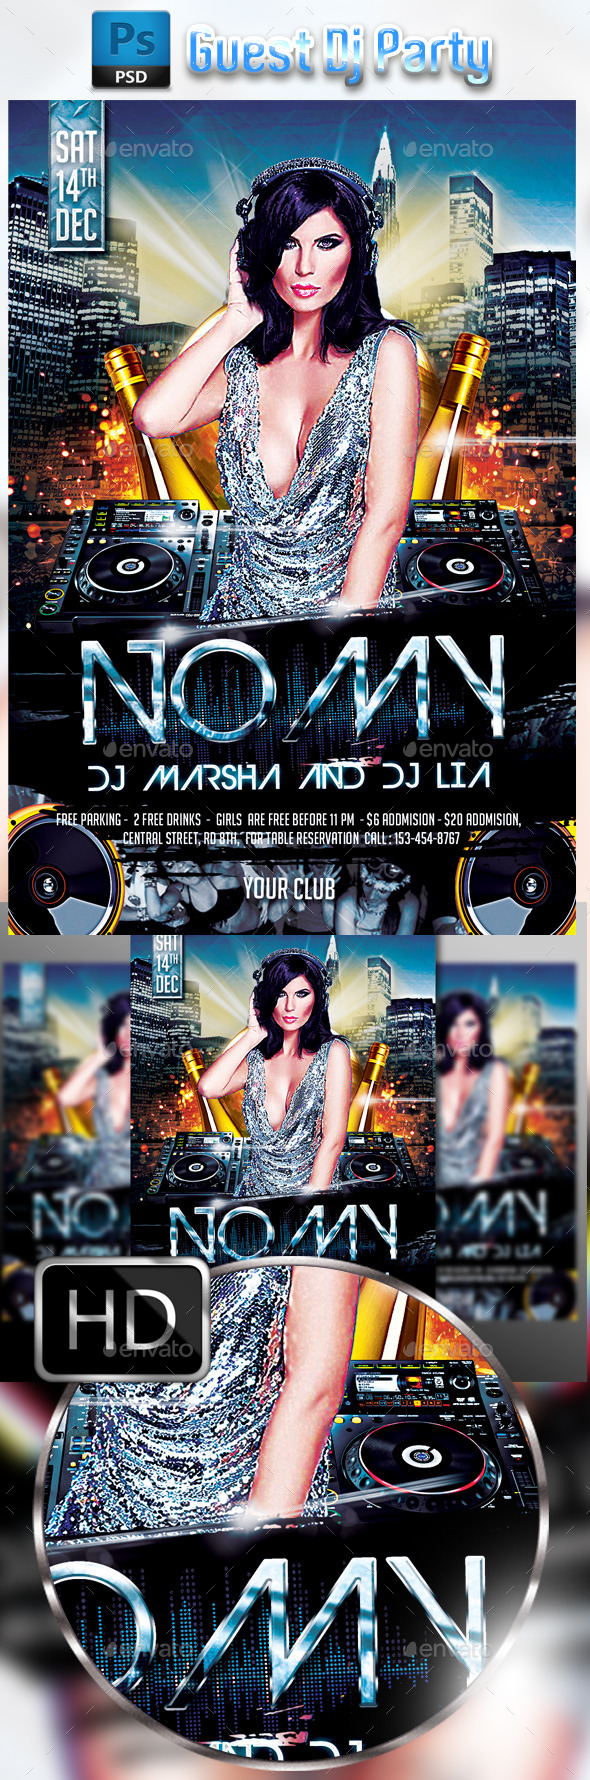 Guest Dj Party #2 - Clubs & Parties Events